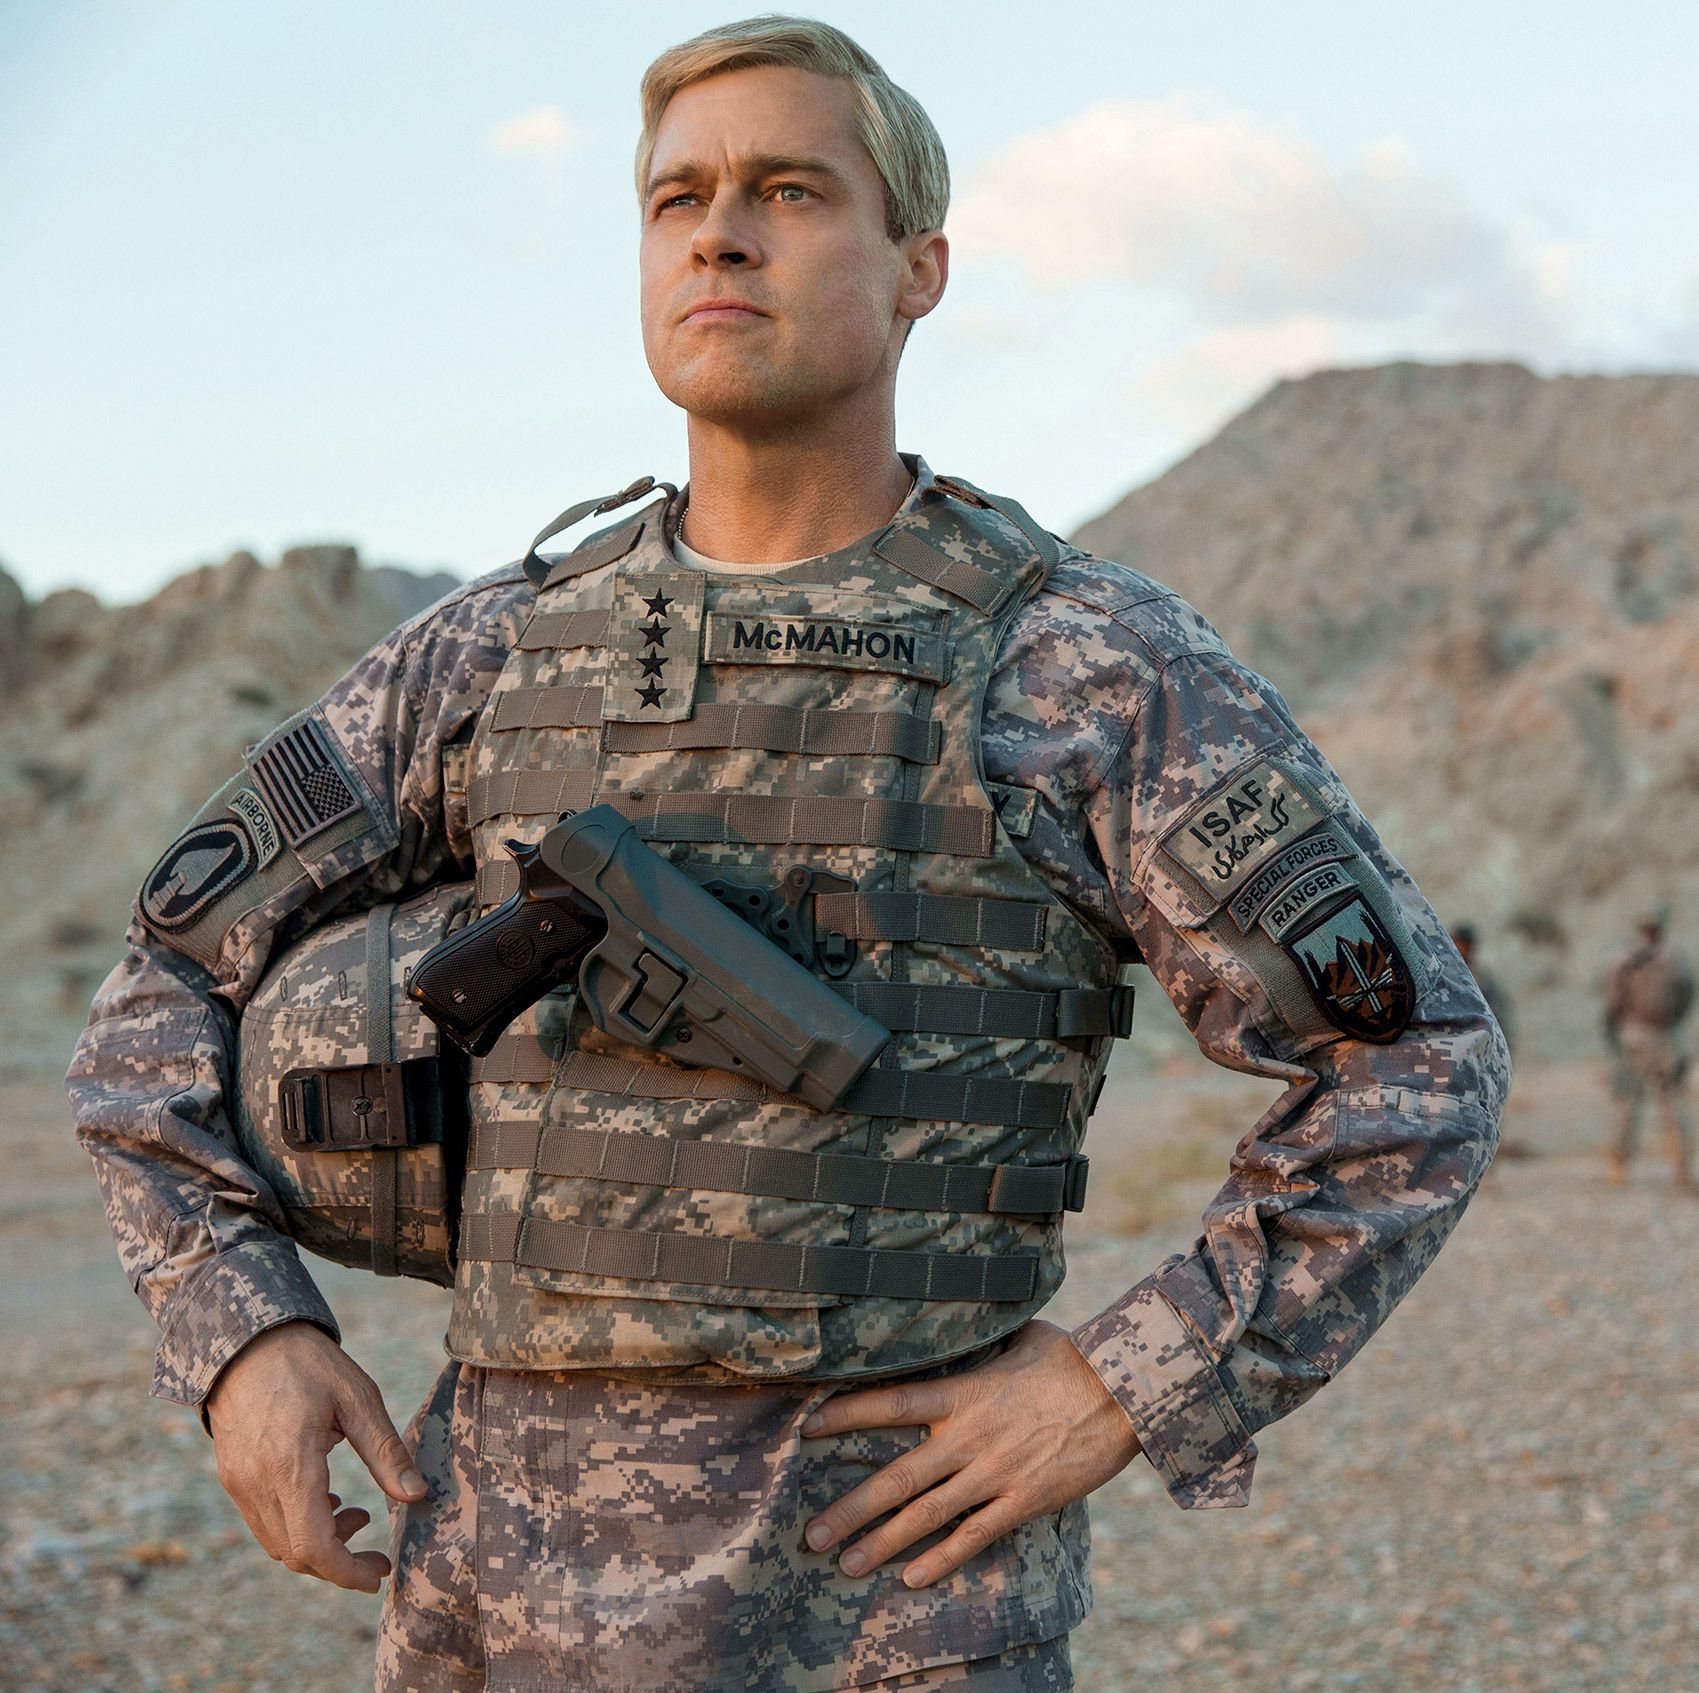 War Machine Brad Pitt plays a tough but wacky U.S. General who is sent to Afghanistan to clean up the military mess following eight years of war. Surrounded by exhausted and disillusioned soldiers, he finds himself up against bureaucratic obstacles in this dark war comedy.